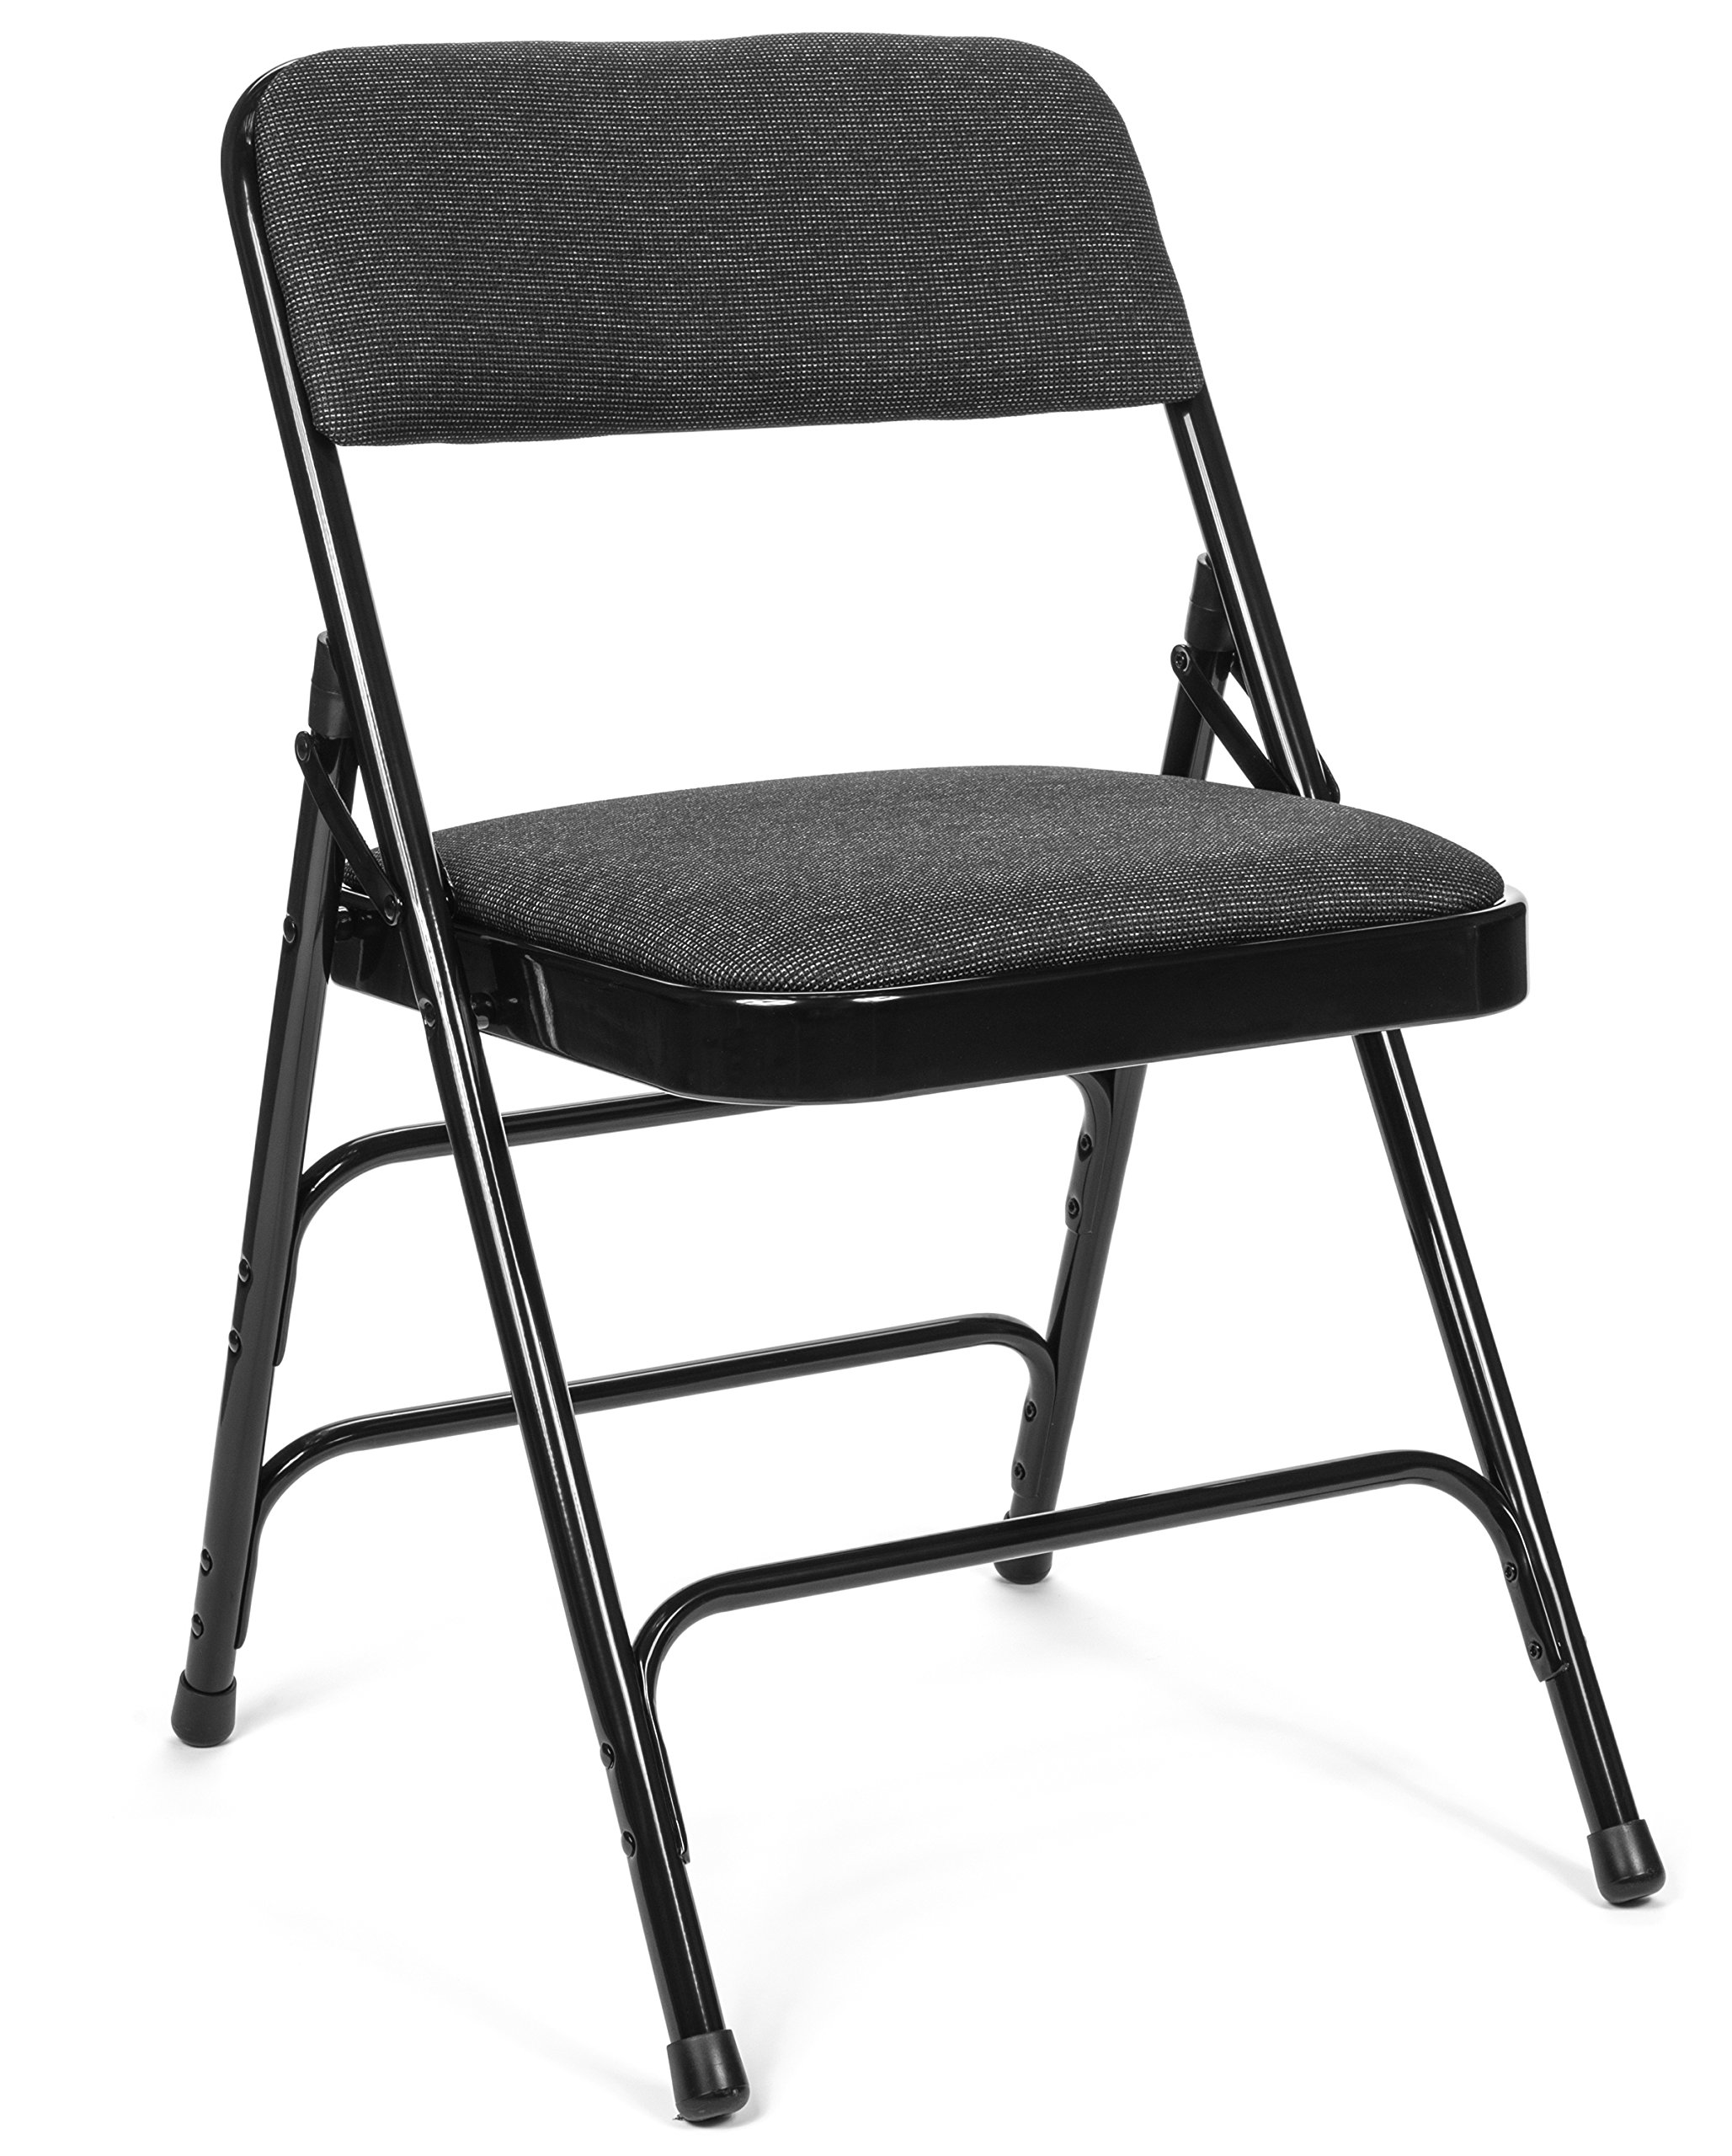 Commercial Fabric Padded Folding Chair, Triple Cross Bracing, Quad Hinging, 300 lb Tested, 4 pack (Black)